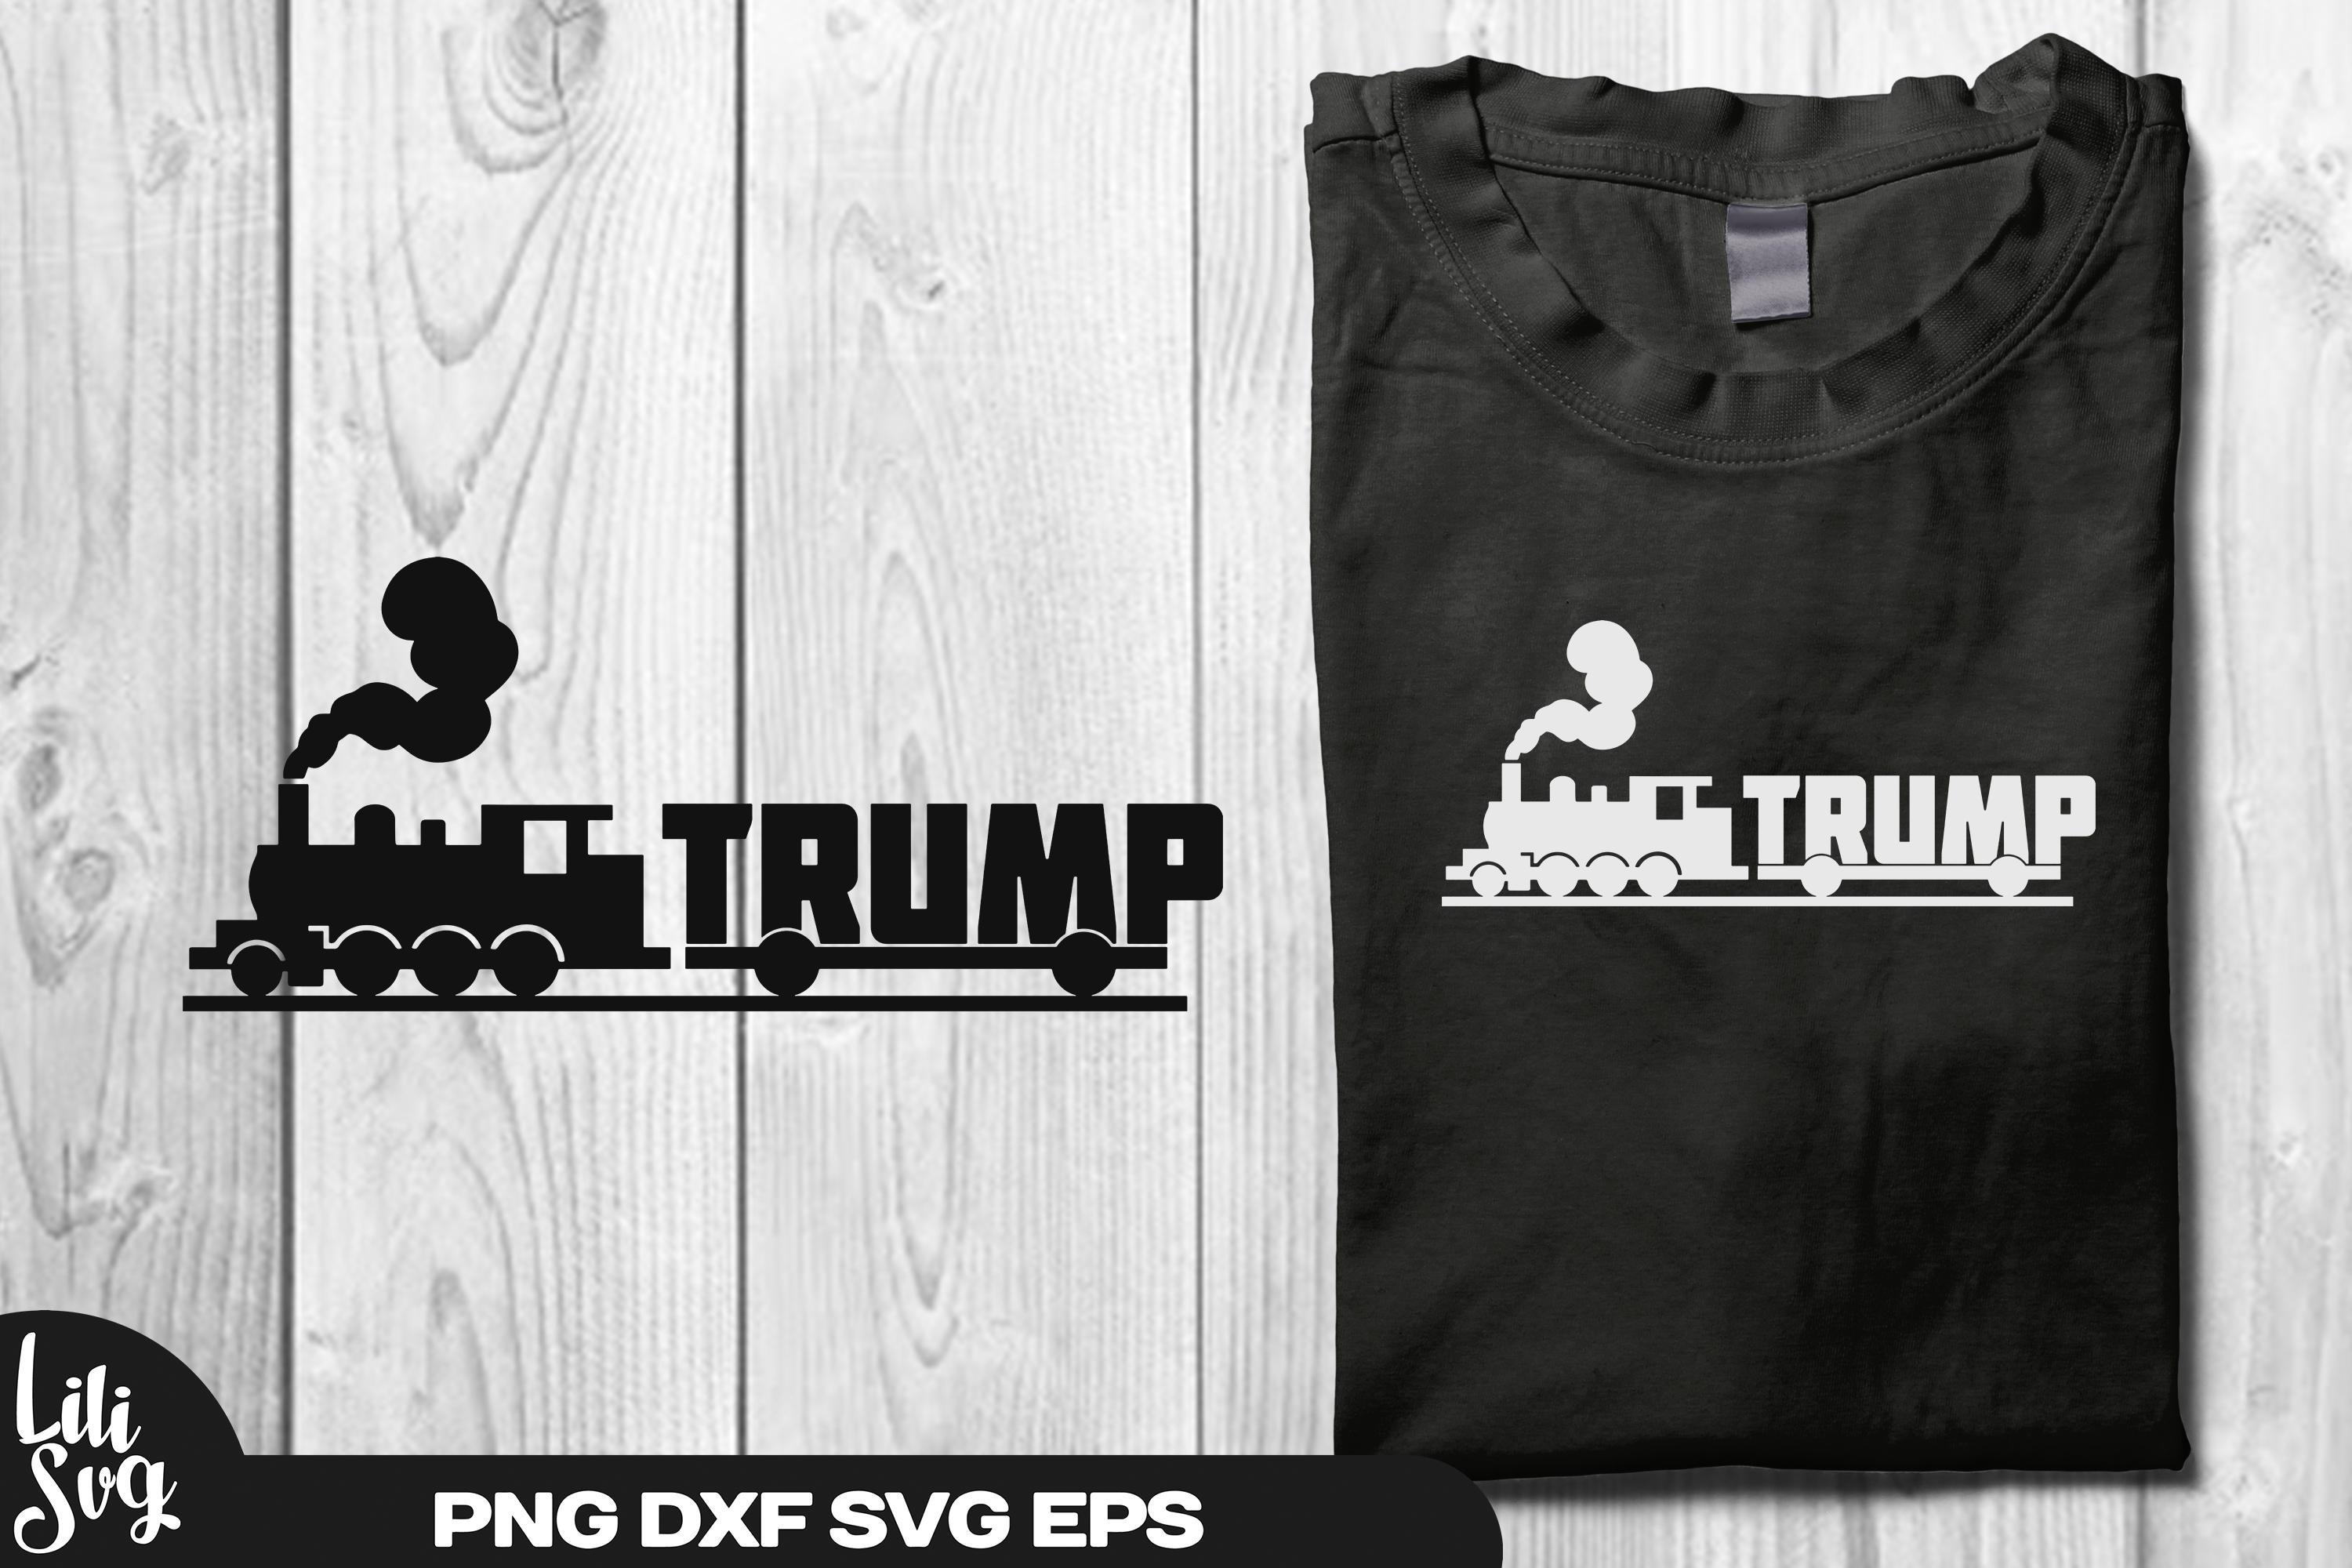 Trump Train Svg Ai Png Dxf Eps File Trump 2020 By Lilisvg On Zibbet